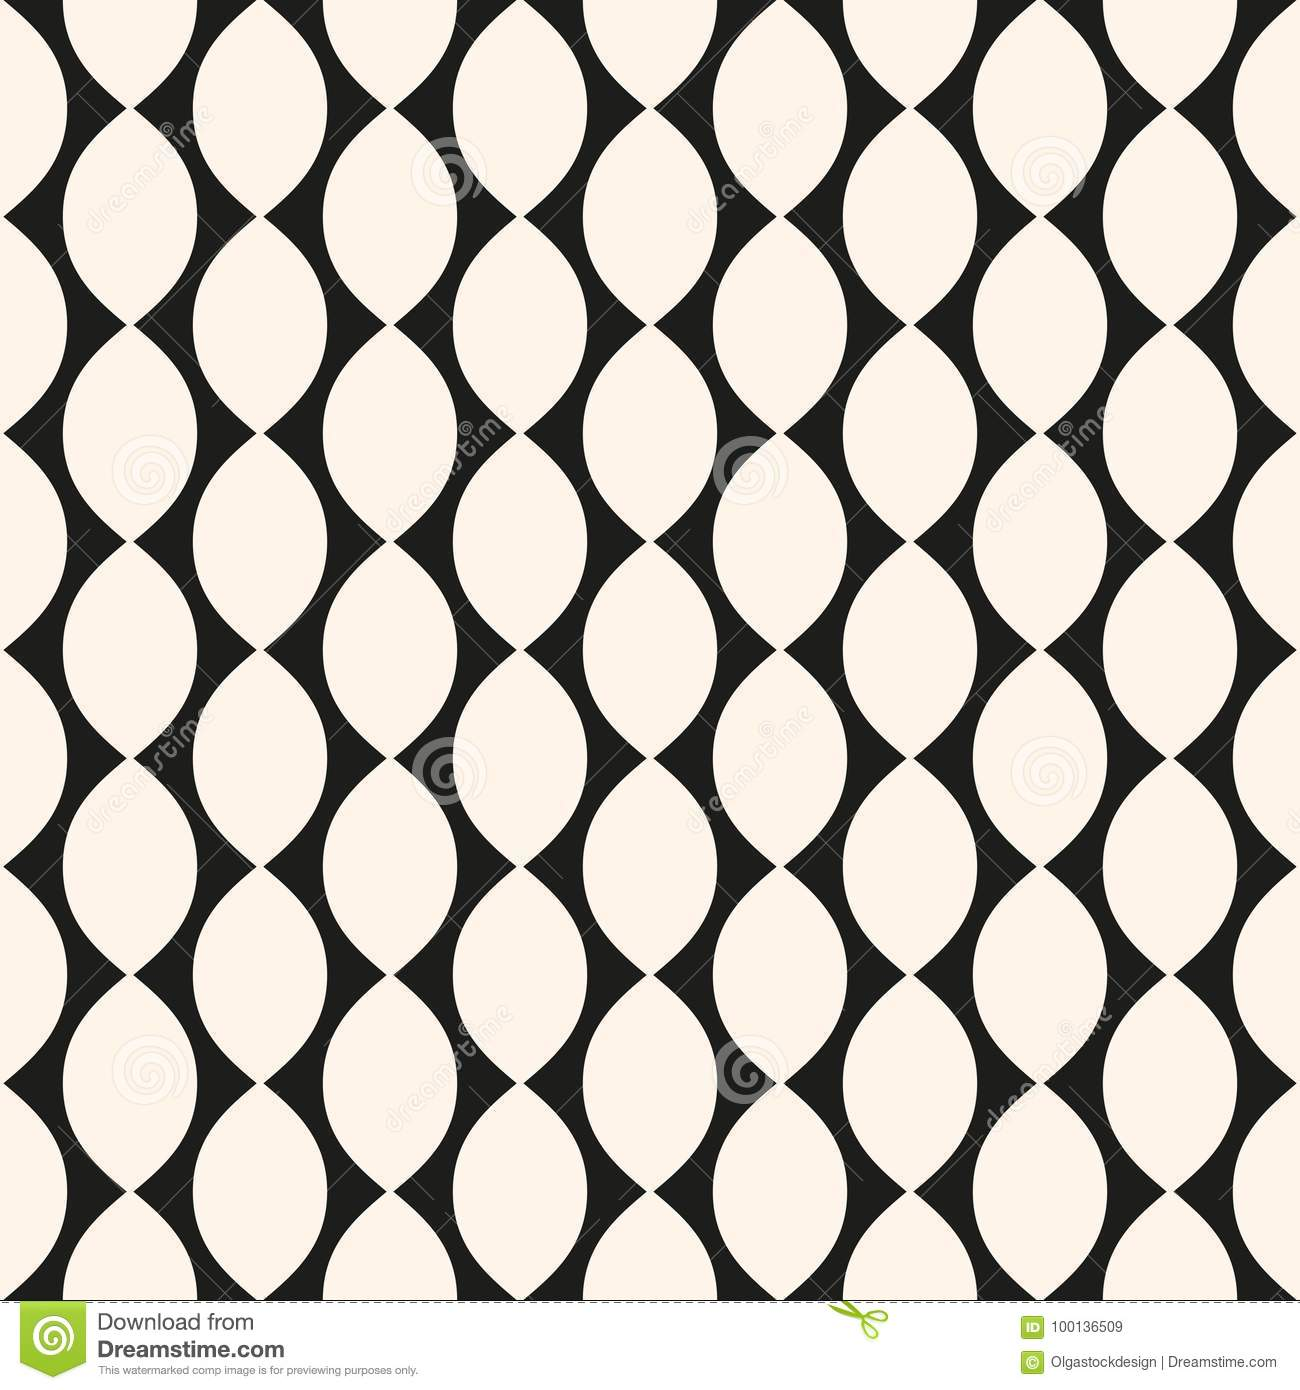 vector geometric seamless pattern with ovate shapes curved line rh dreamstime com free vector geometric pattern download vector geometric pattern free